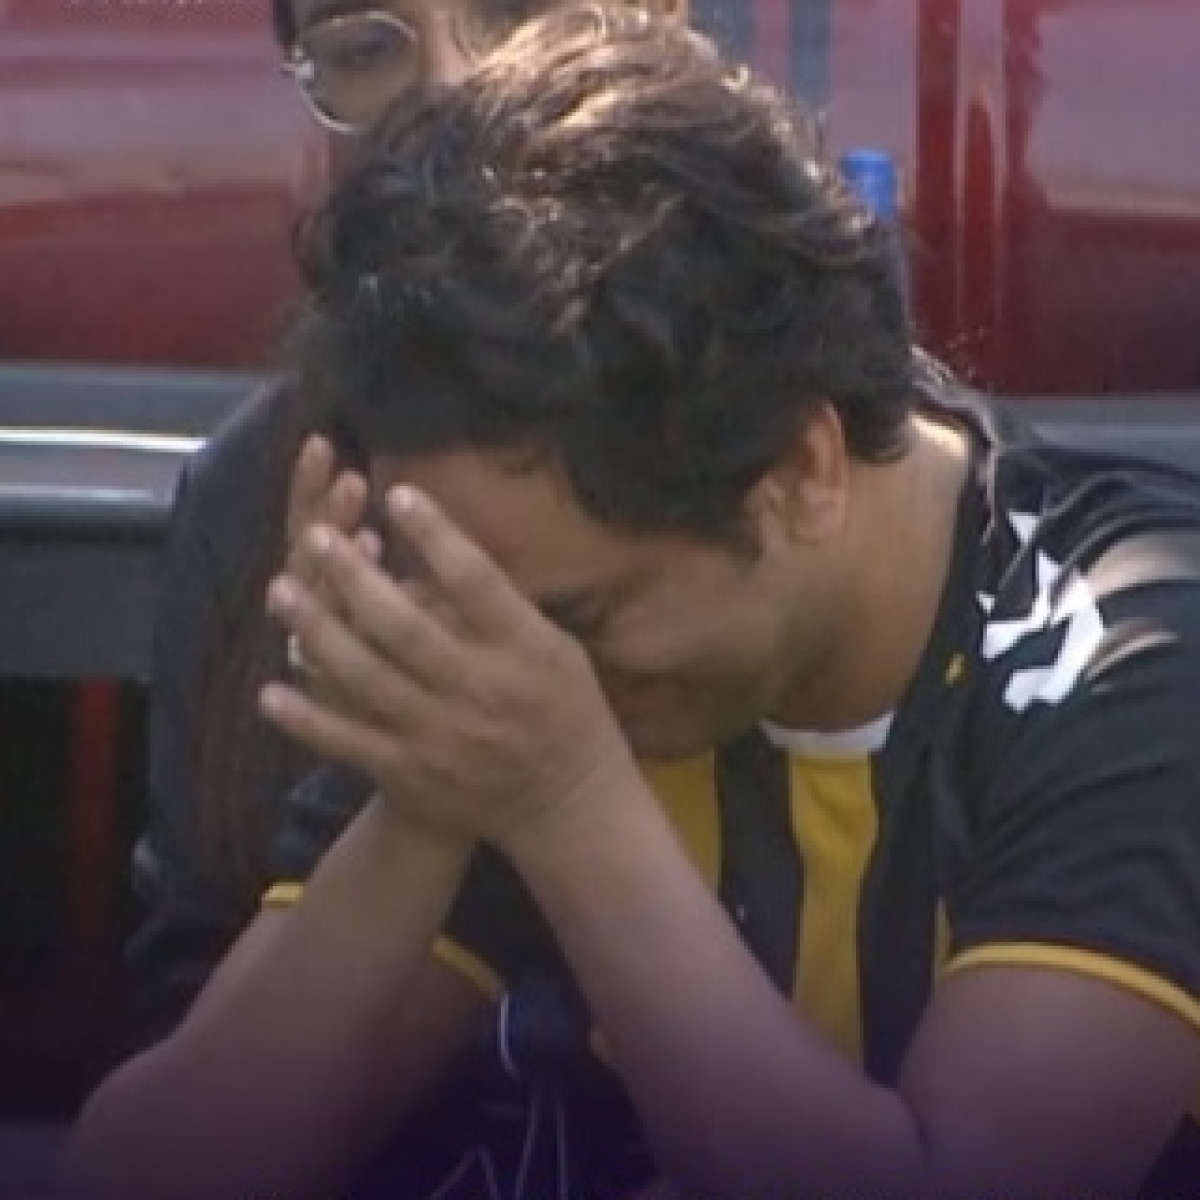 Watch: Vikas Gupta breaks down as he reveals he was in relationship with a former 'Bigg Boss' contestant